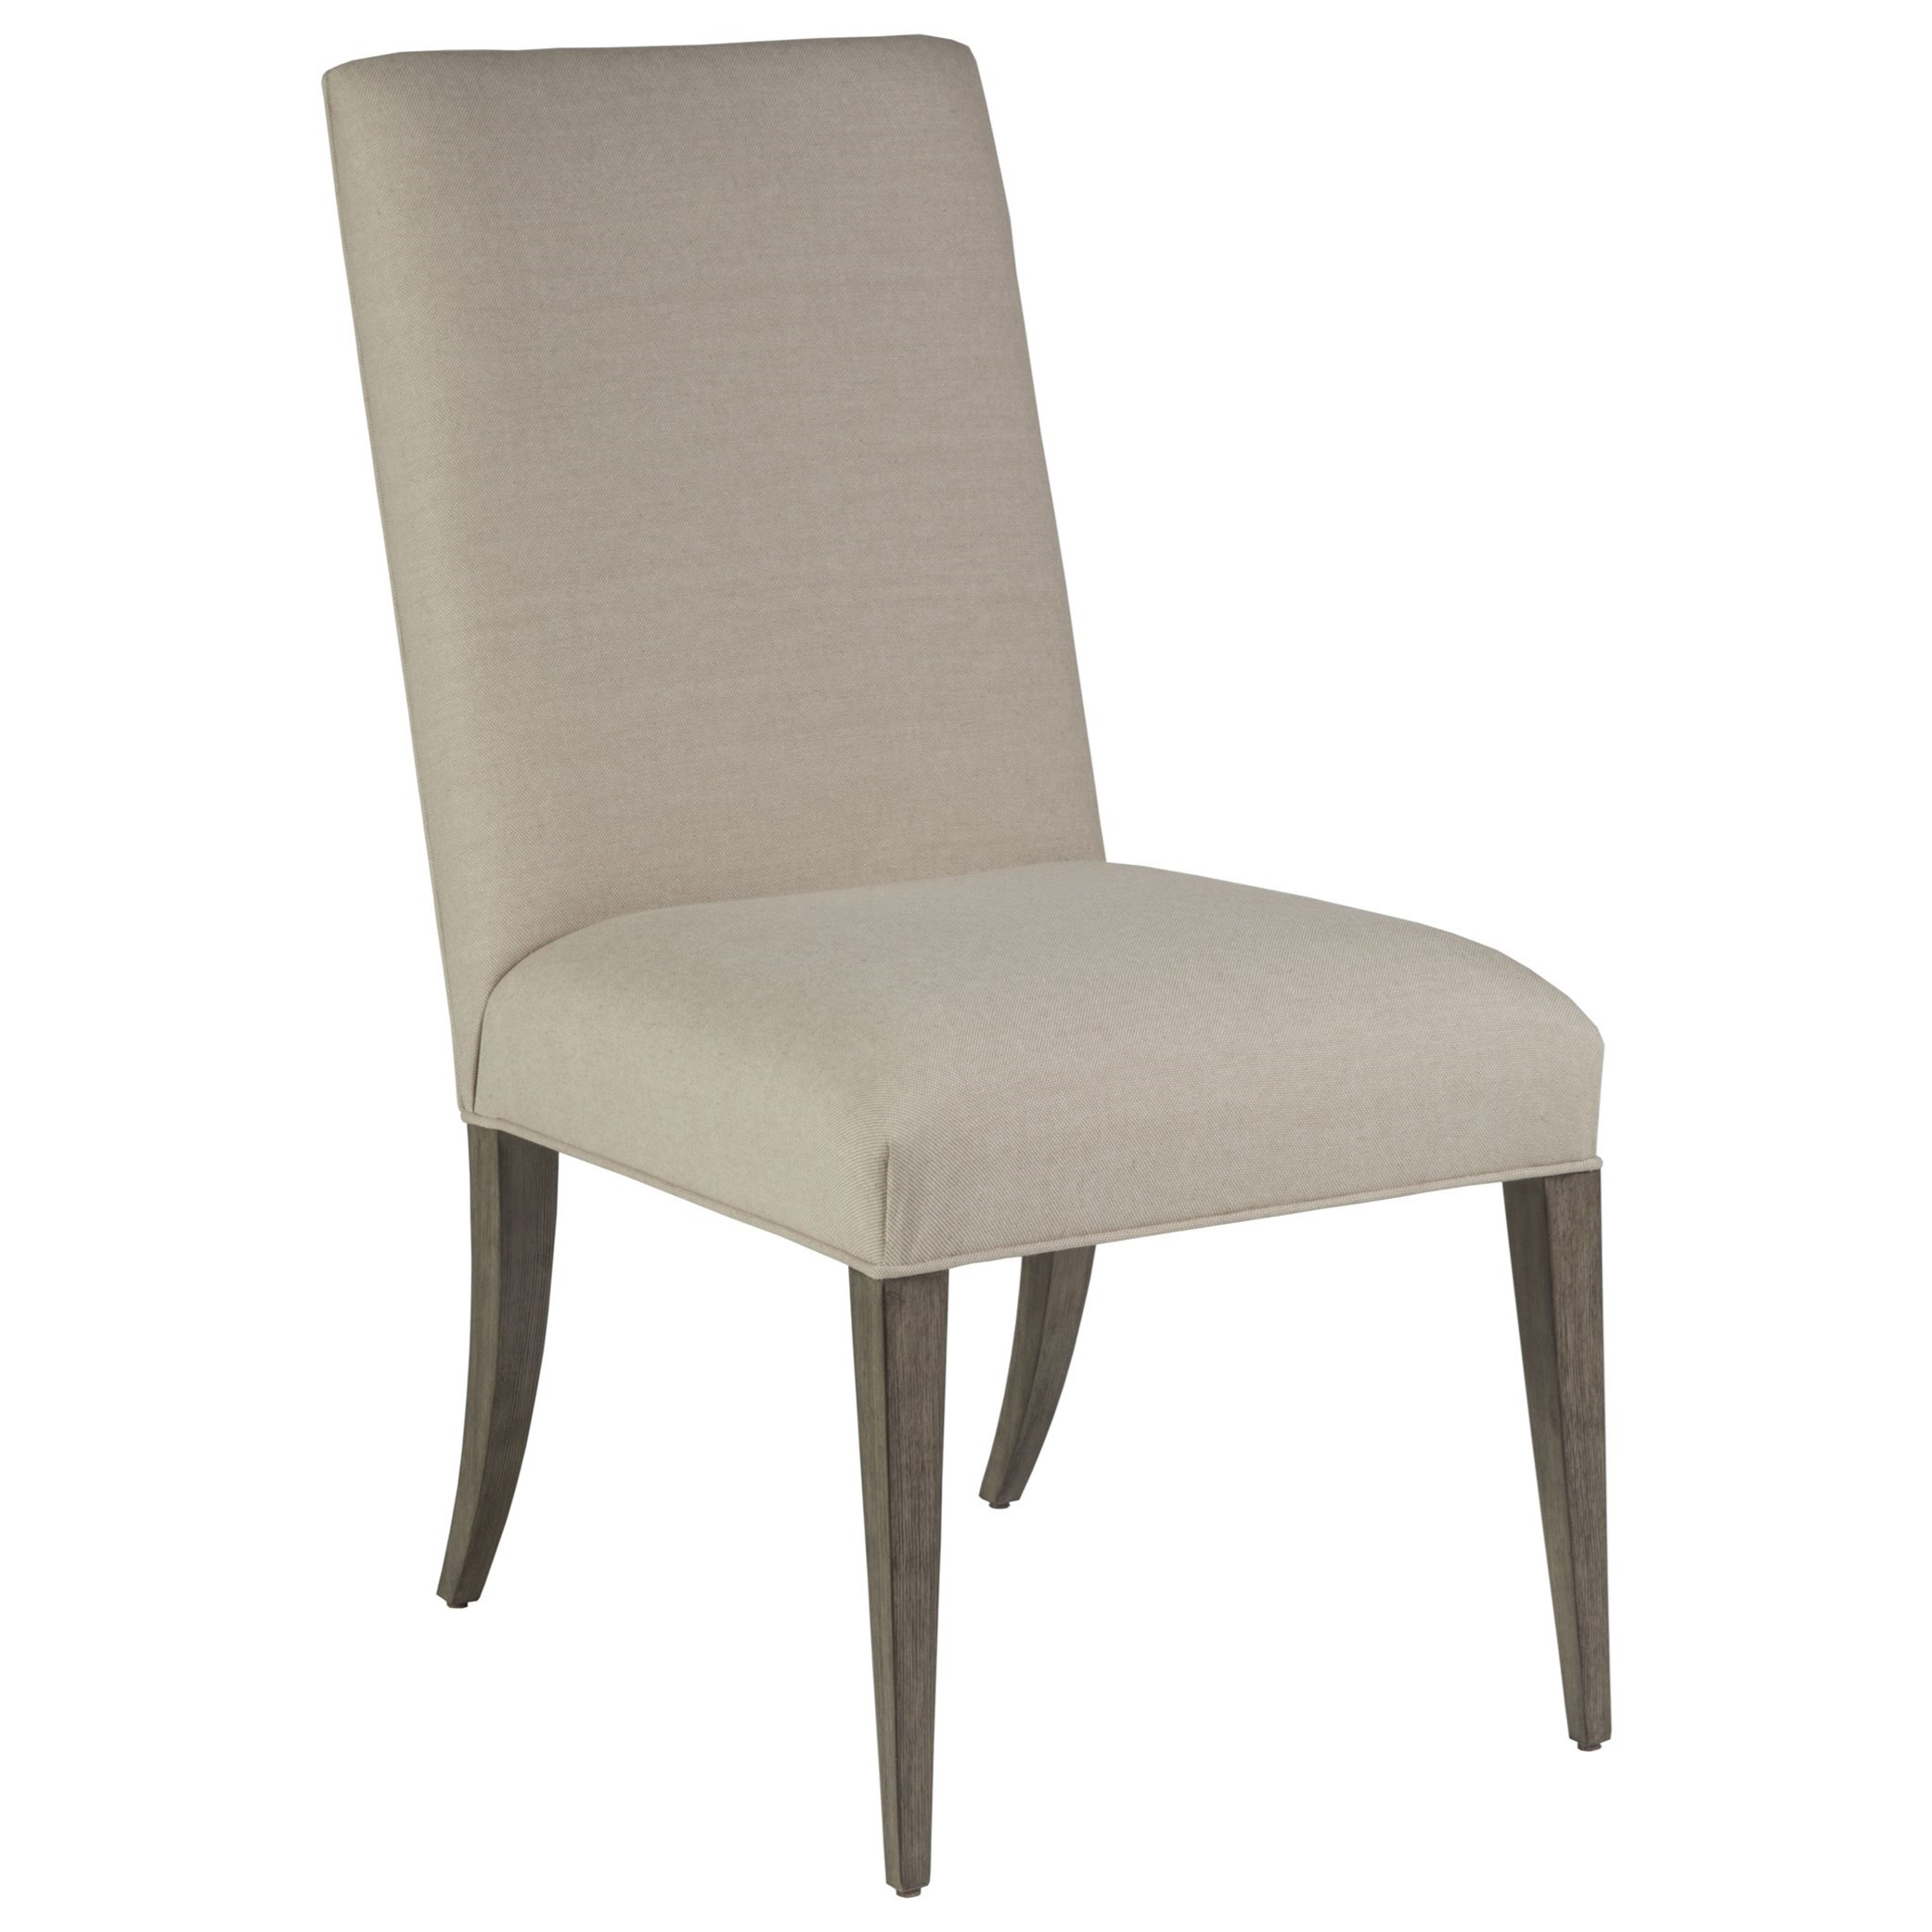 Cohesion Madox Upholstered Side Chair by Artistica at Alison Craig Home Furnishings